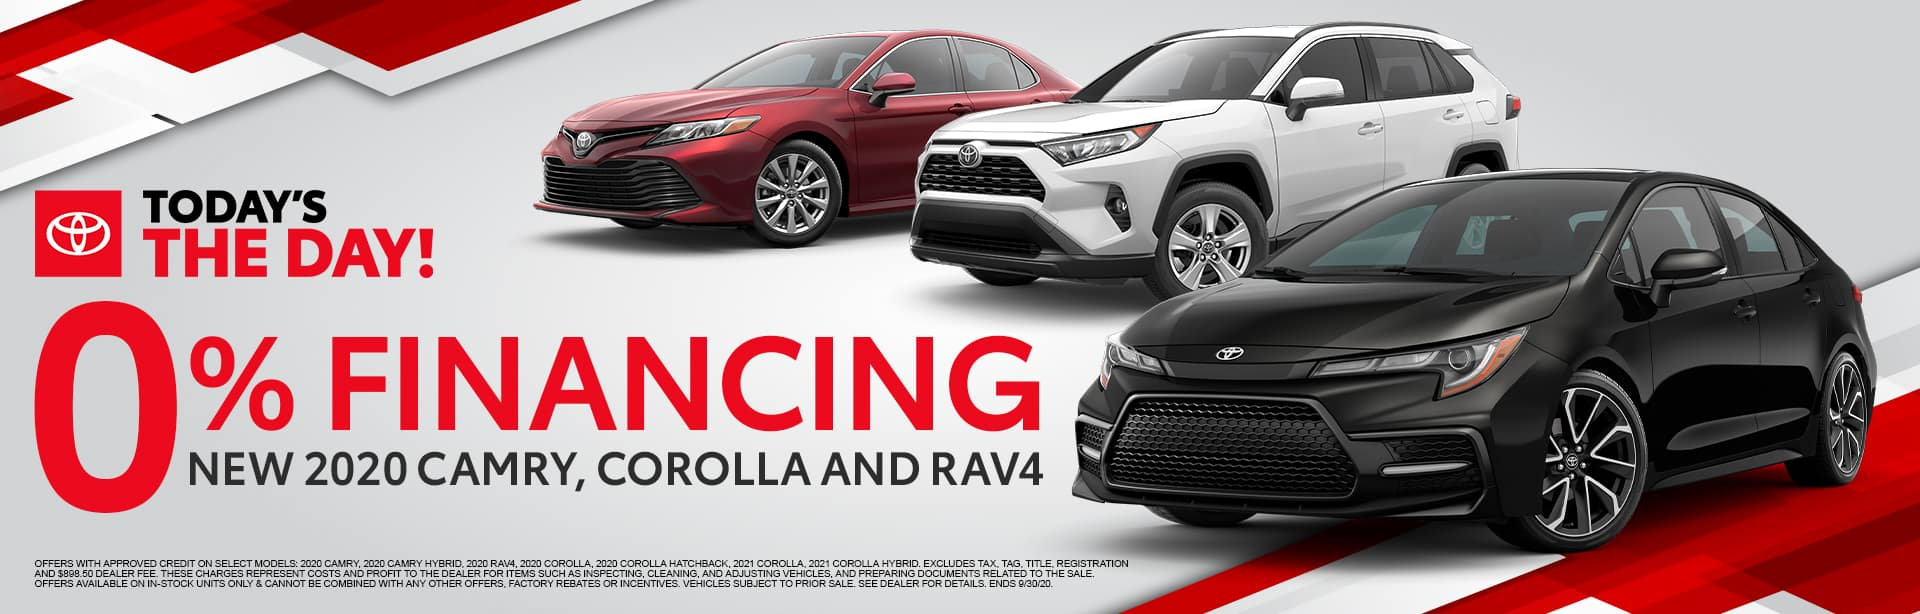 0% Financing for New 2020 Camry, Corolla and RAV4 at Bev Smith Toyota!